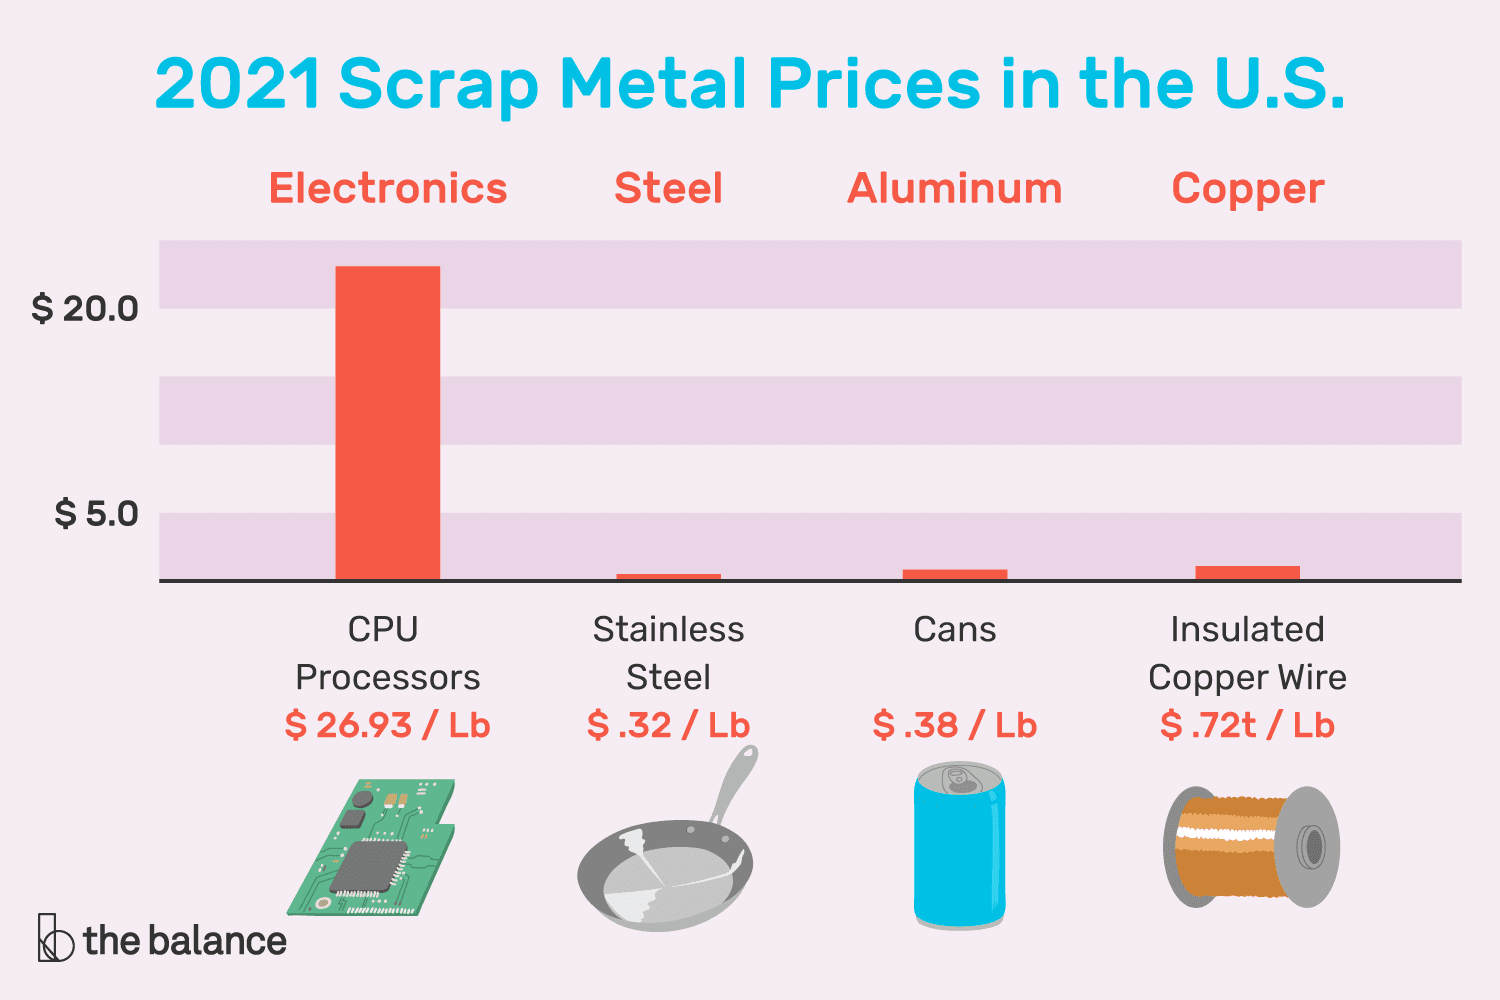 An illustration showing select scrap metal prices as of January 2021.